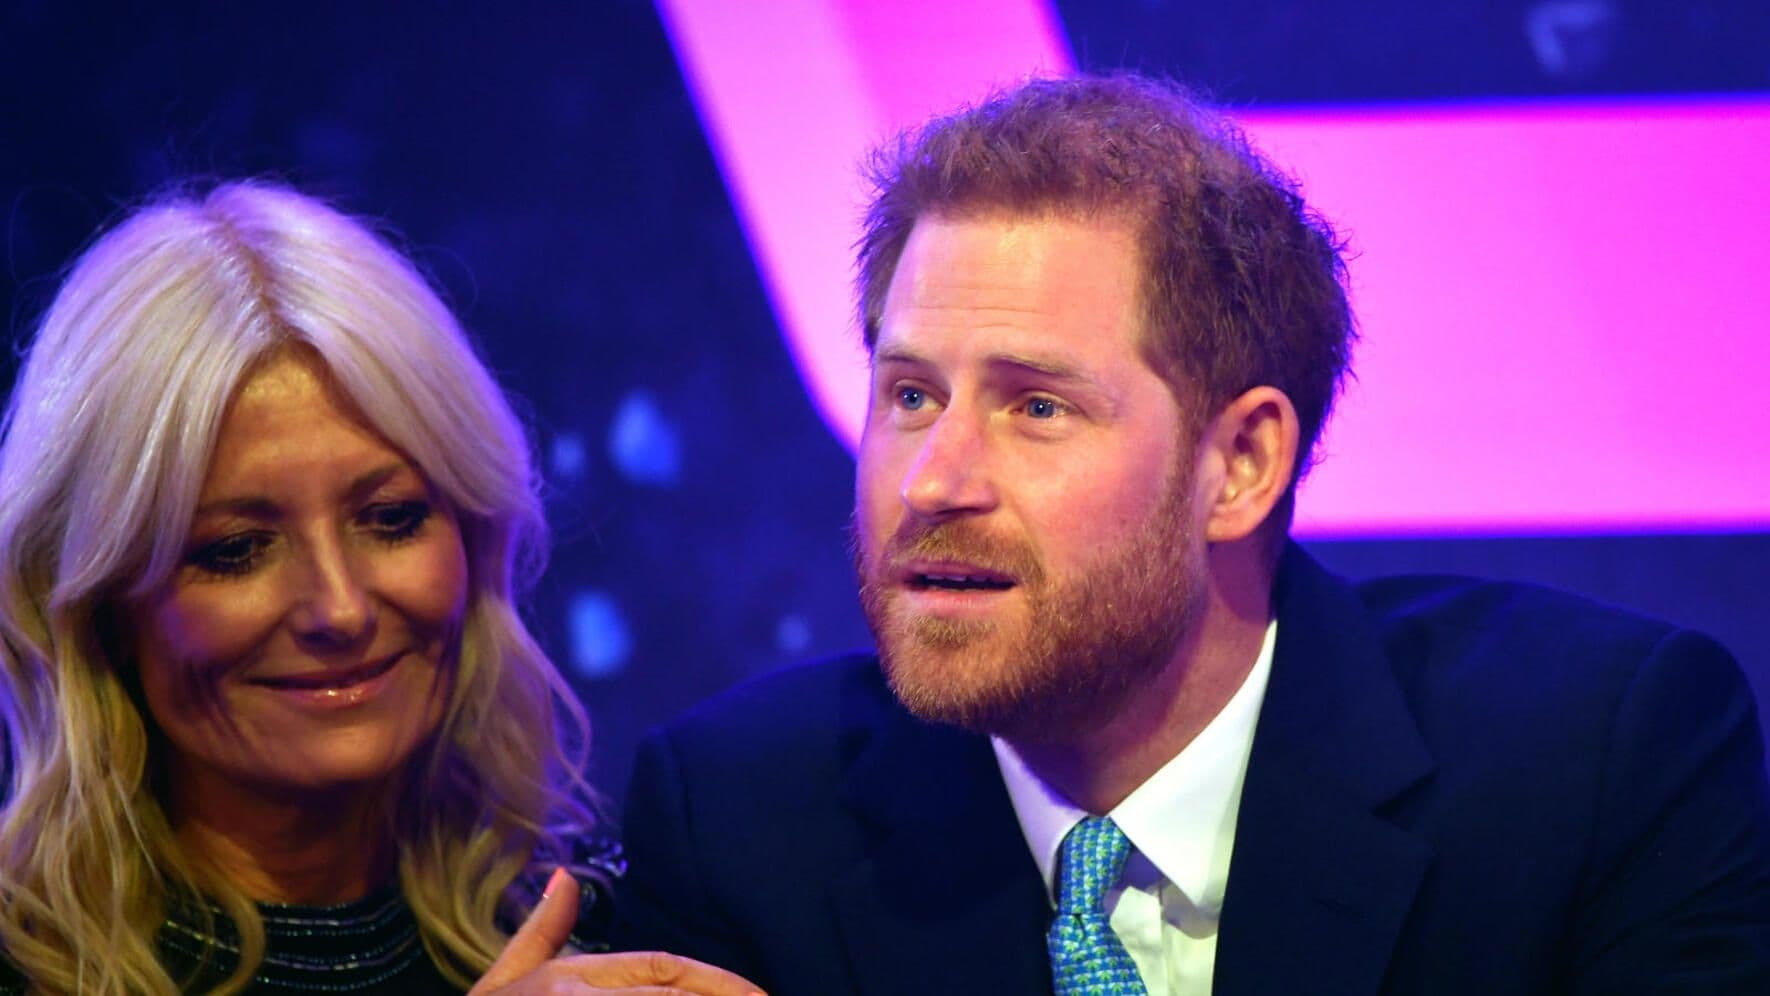 LONDON, ENGLAND - OCTOBER 15: Prince Harry, Duke of Sussex reacts next to television presenter Gaby Roslin as he delivers a speech during the WellChild awards at Royal Lancaster Hotel on October 15, 2019 in London, England. (Photo by Toby Melville - WPA Pool/Getty Images)